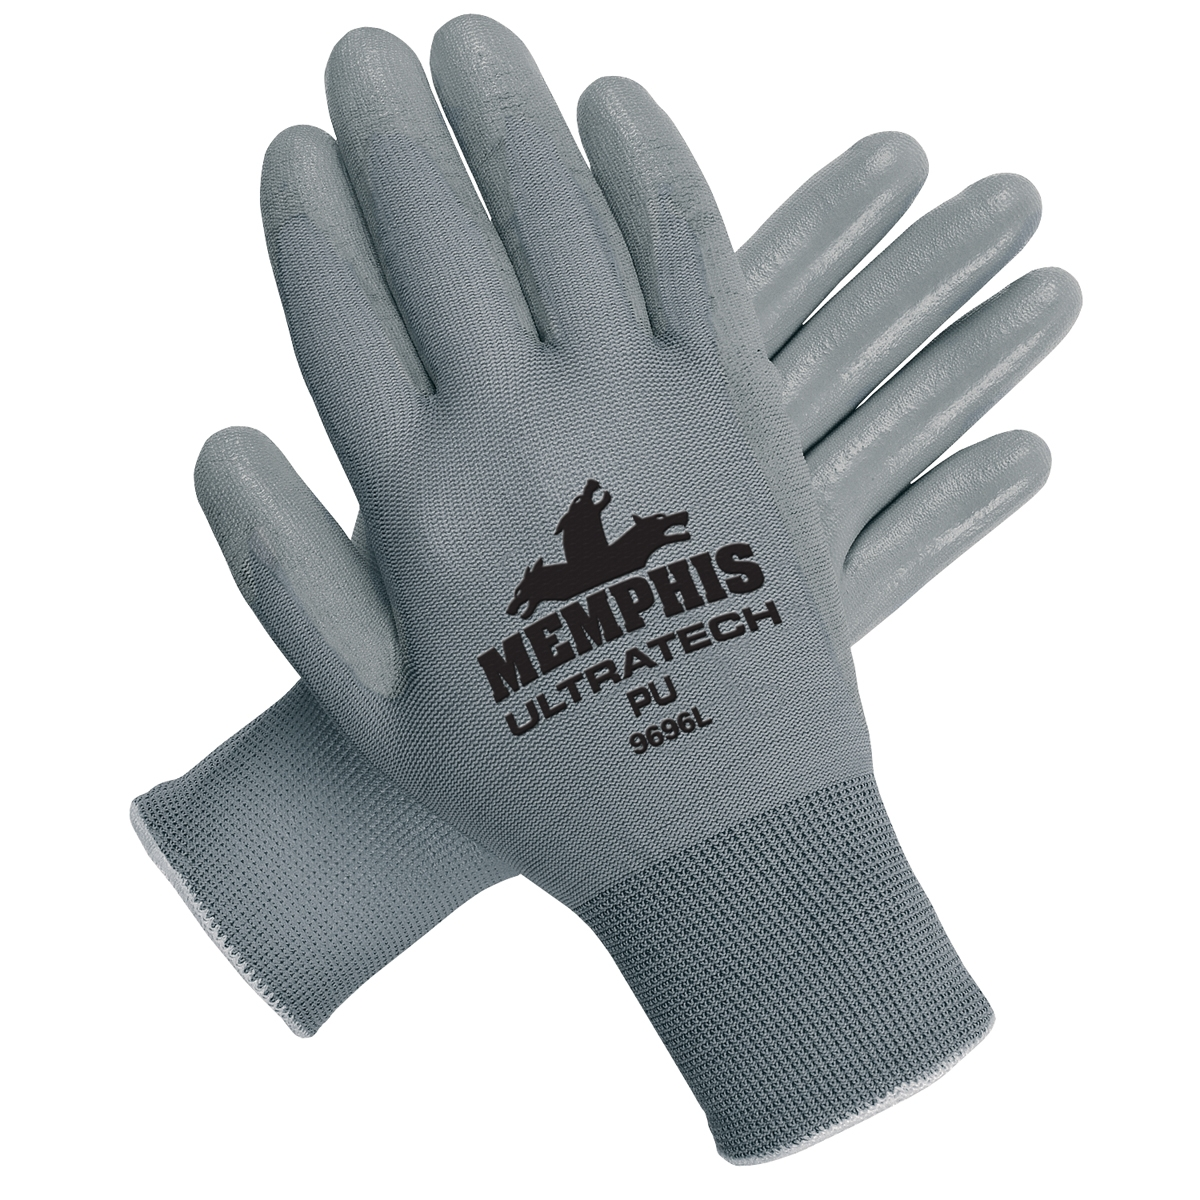 c1d4b2eca0 Memphis 9696 UltraTech PU Gloves - 13 Gauge Gray Nylon - Gray ...